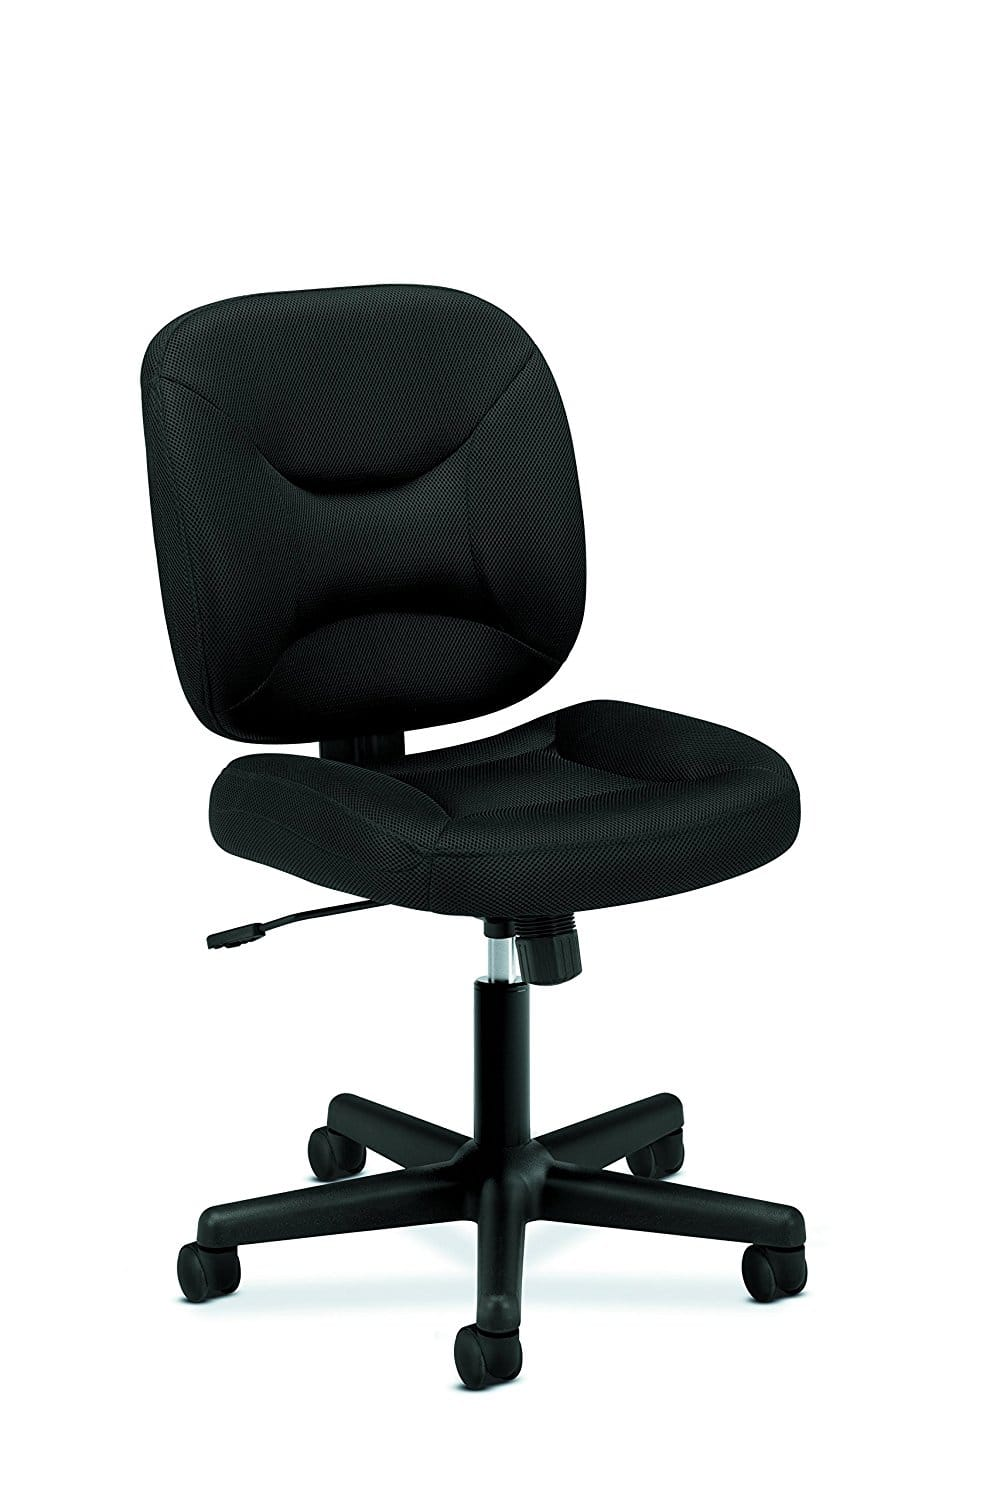 basyx by HON Low Back Task Chair - $53.02 @ Amazon.com